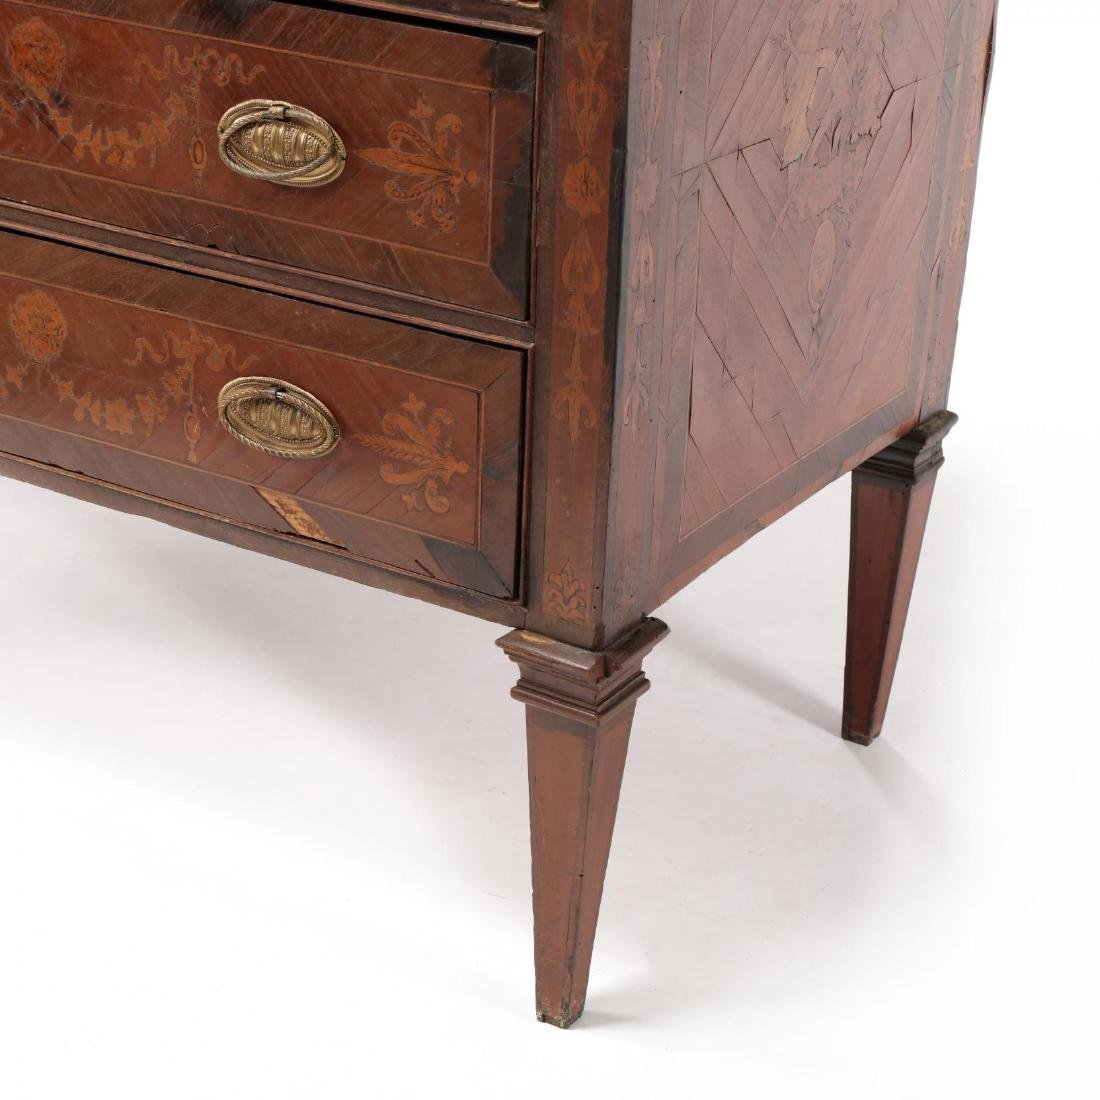 Italian Marquetry Inlaid Commode - 4